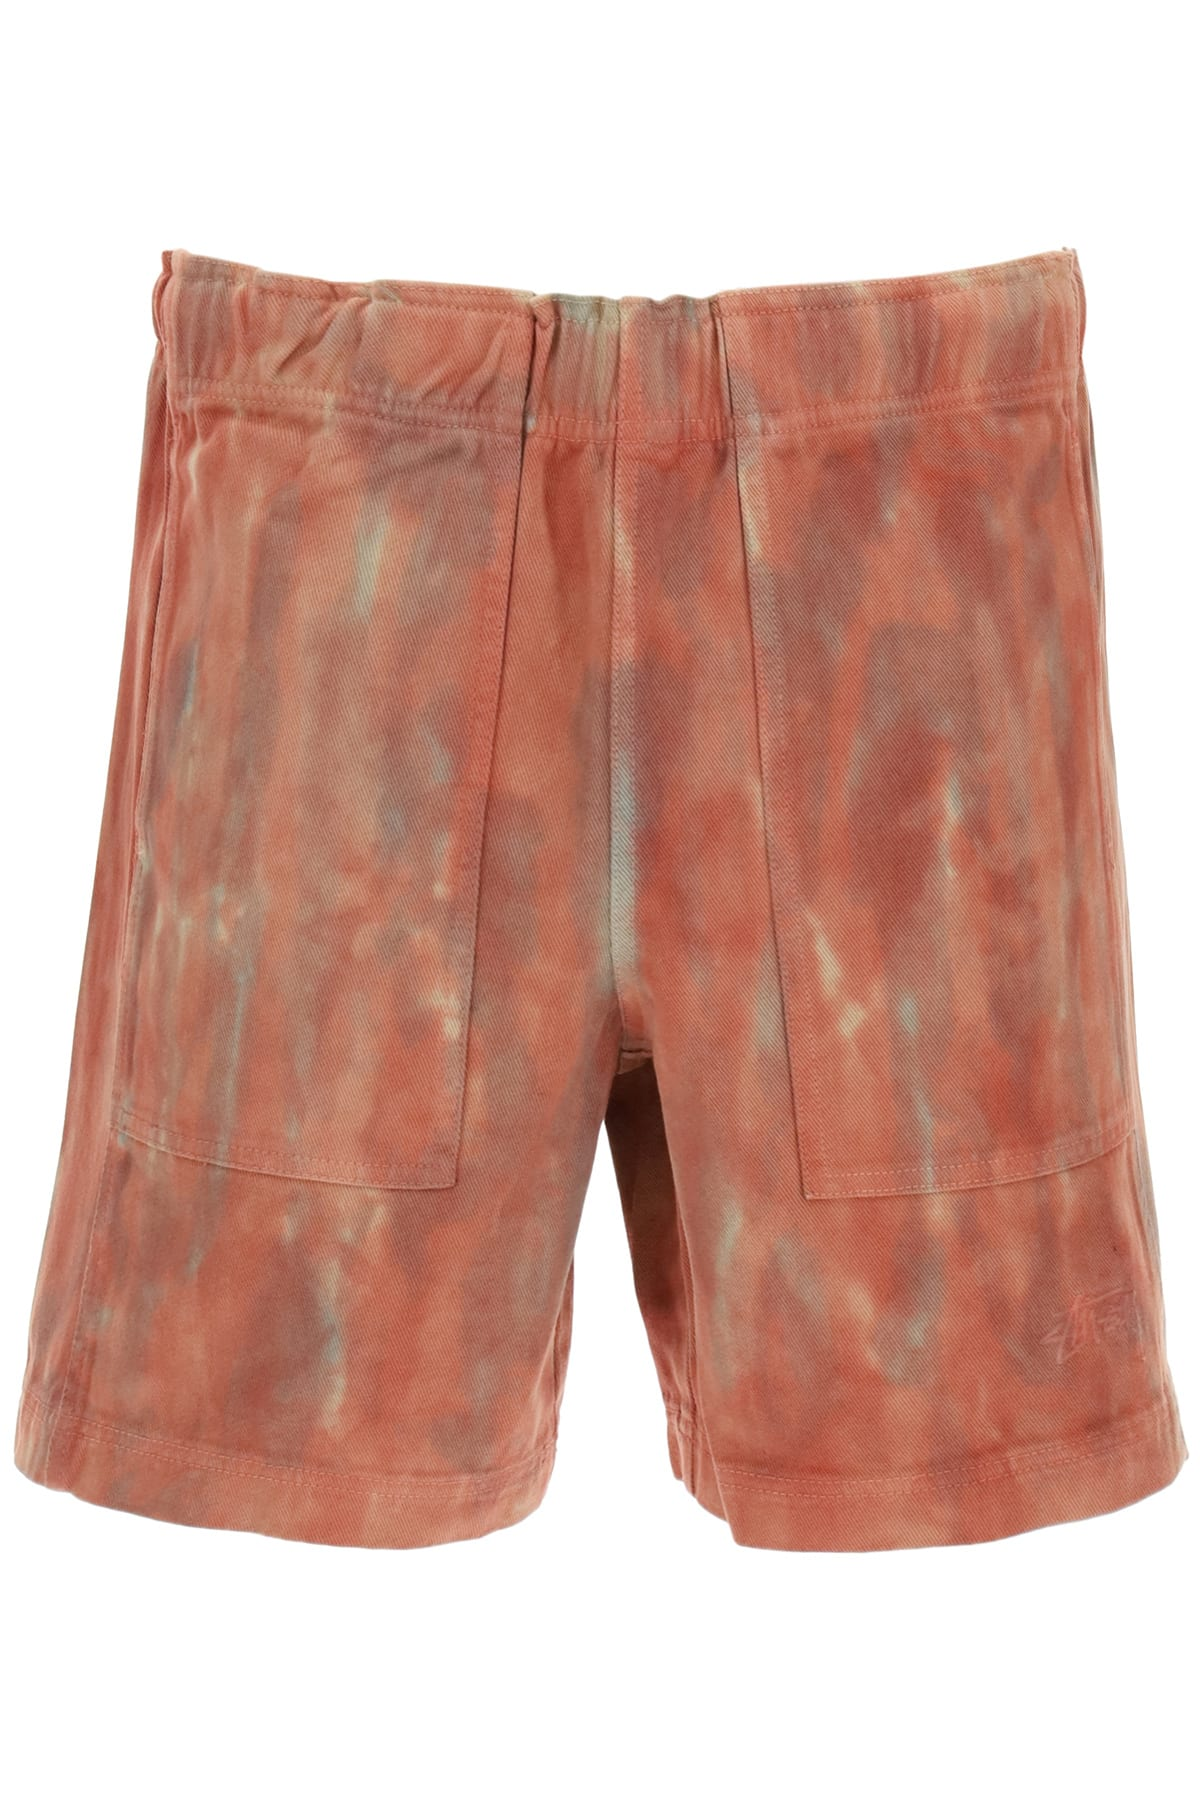 Stussy Dyed Easy Shorts